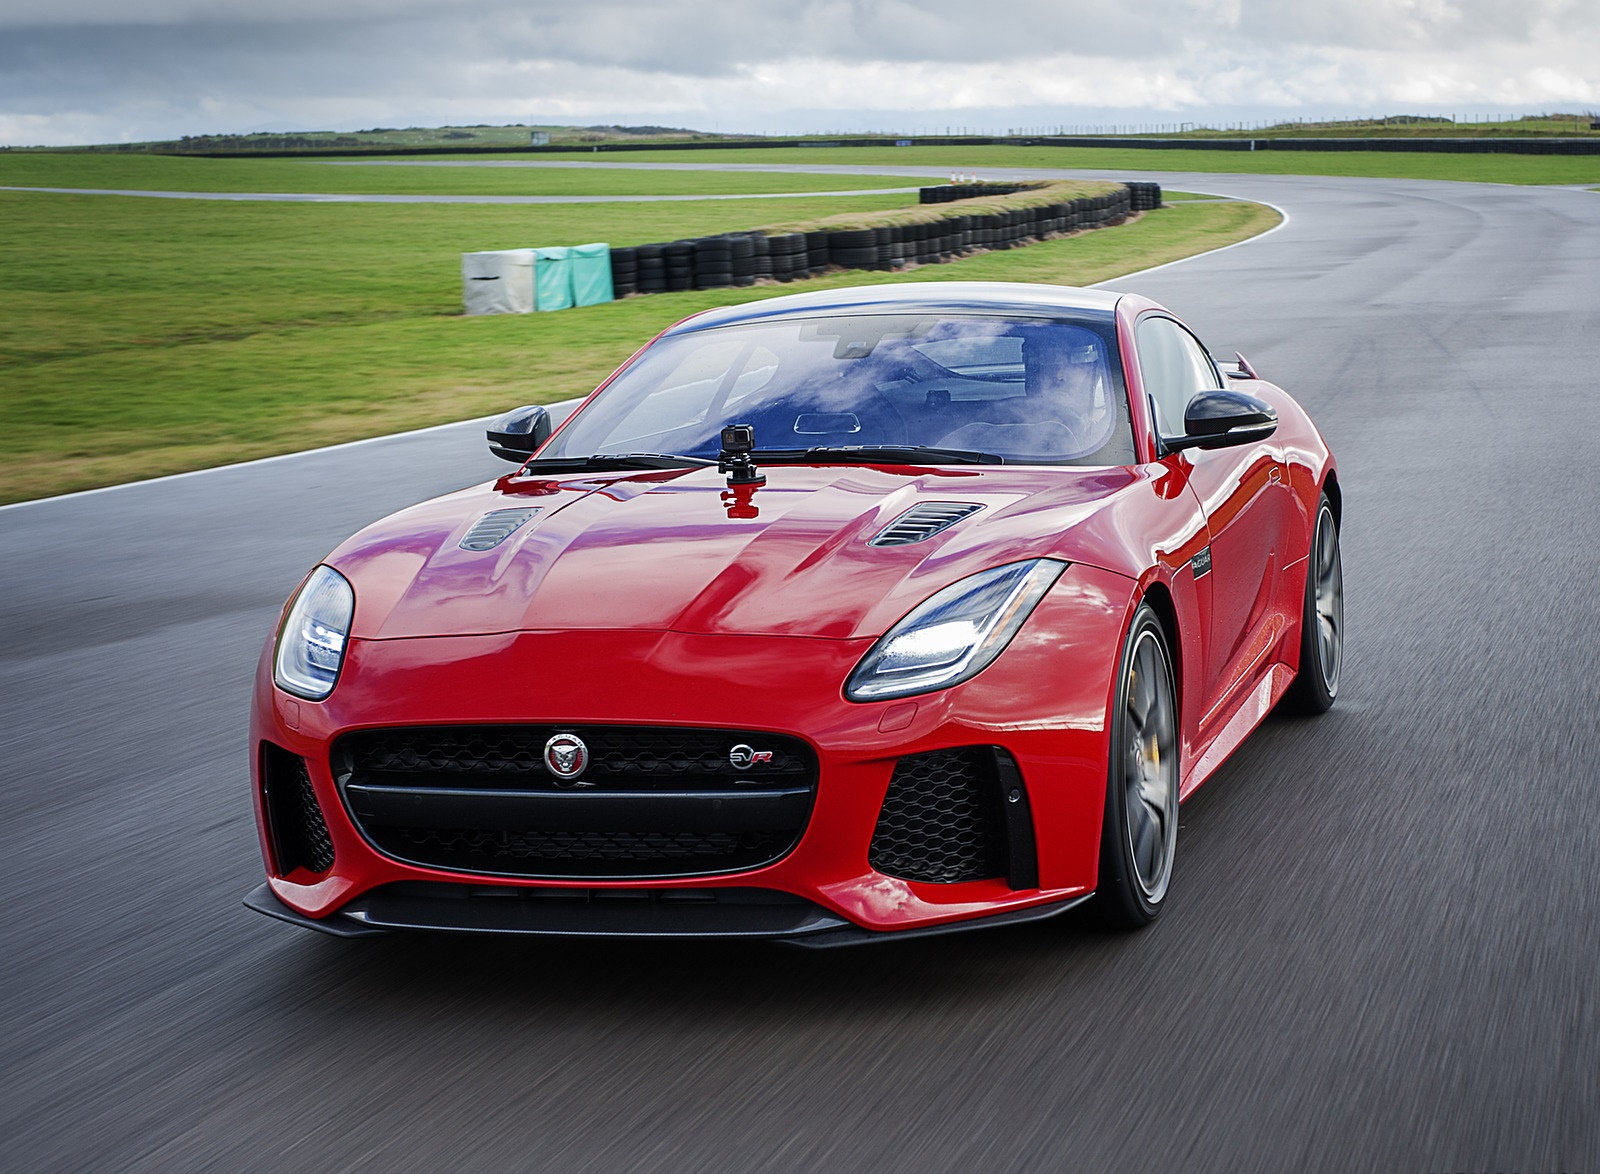 2018 Jaguar F Type Coupe And Convertible Wallpapers 51 Hd Images